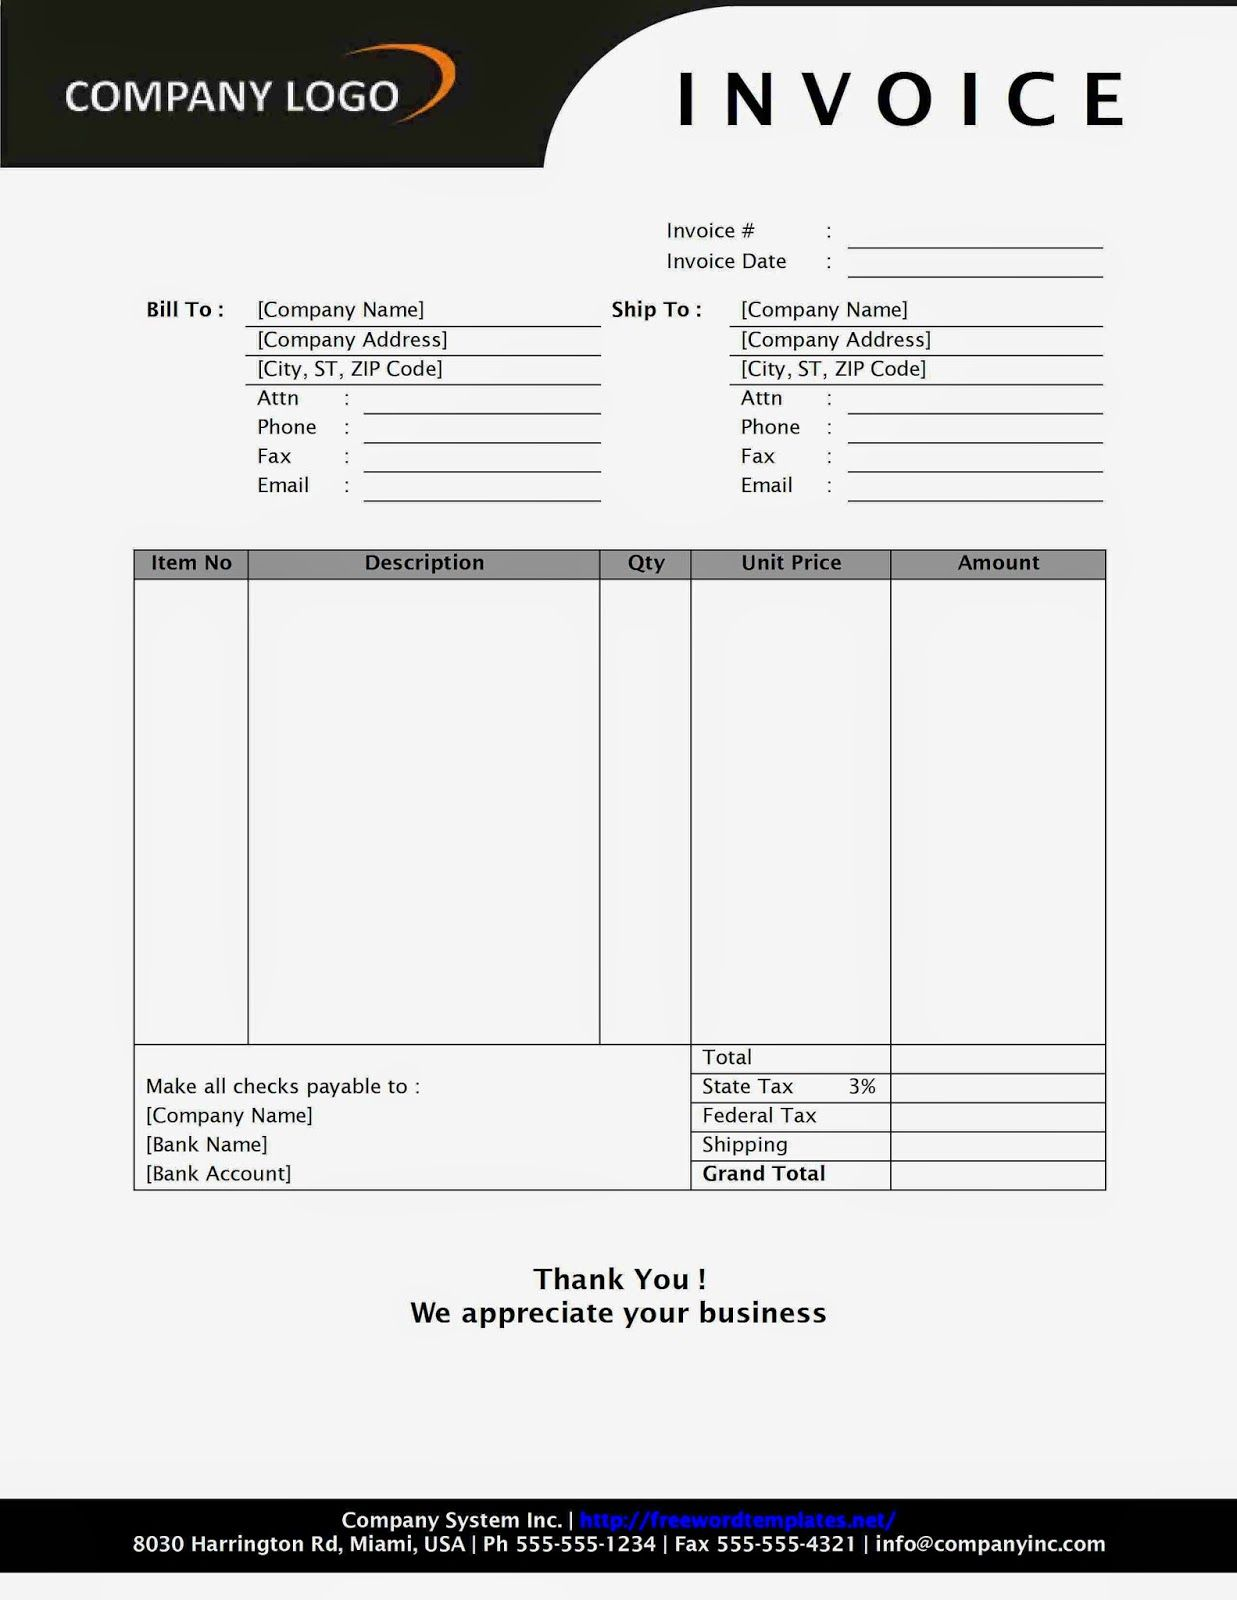 Simple Sales Invoice SD Style Books Worth Reading Pinterest - Free invoice template : free sales invoice template